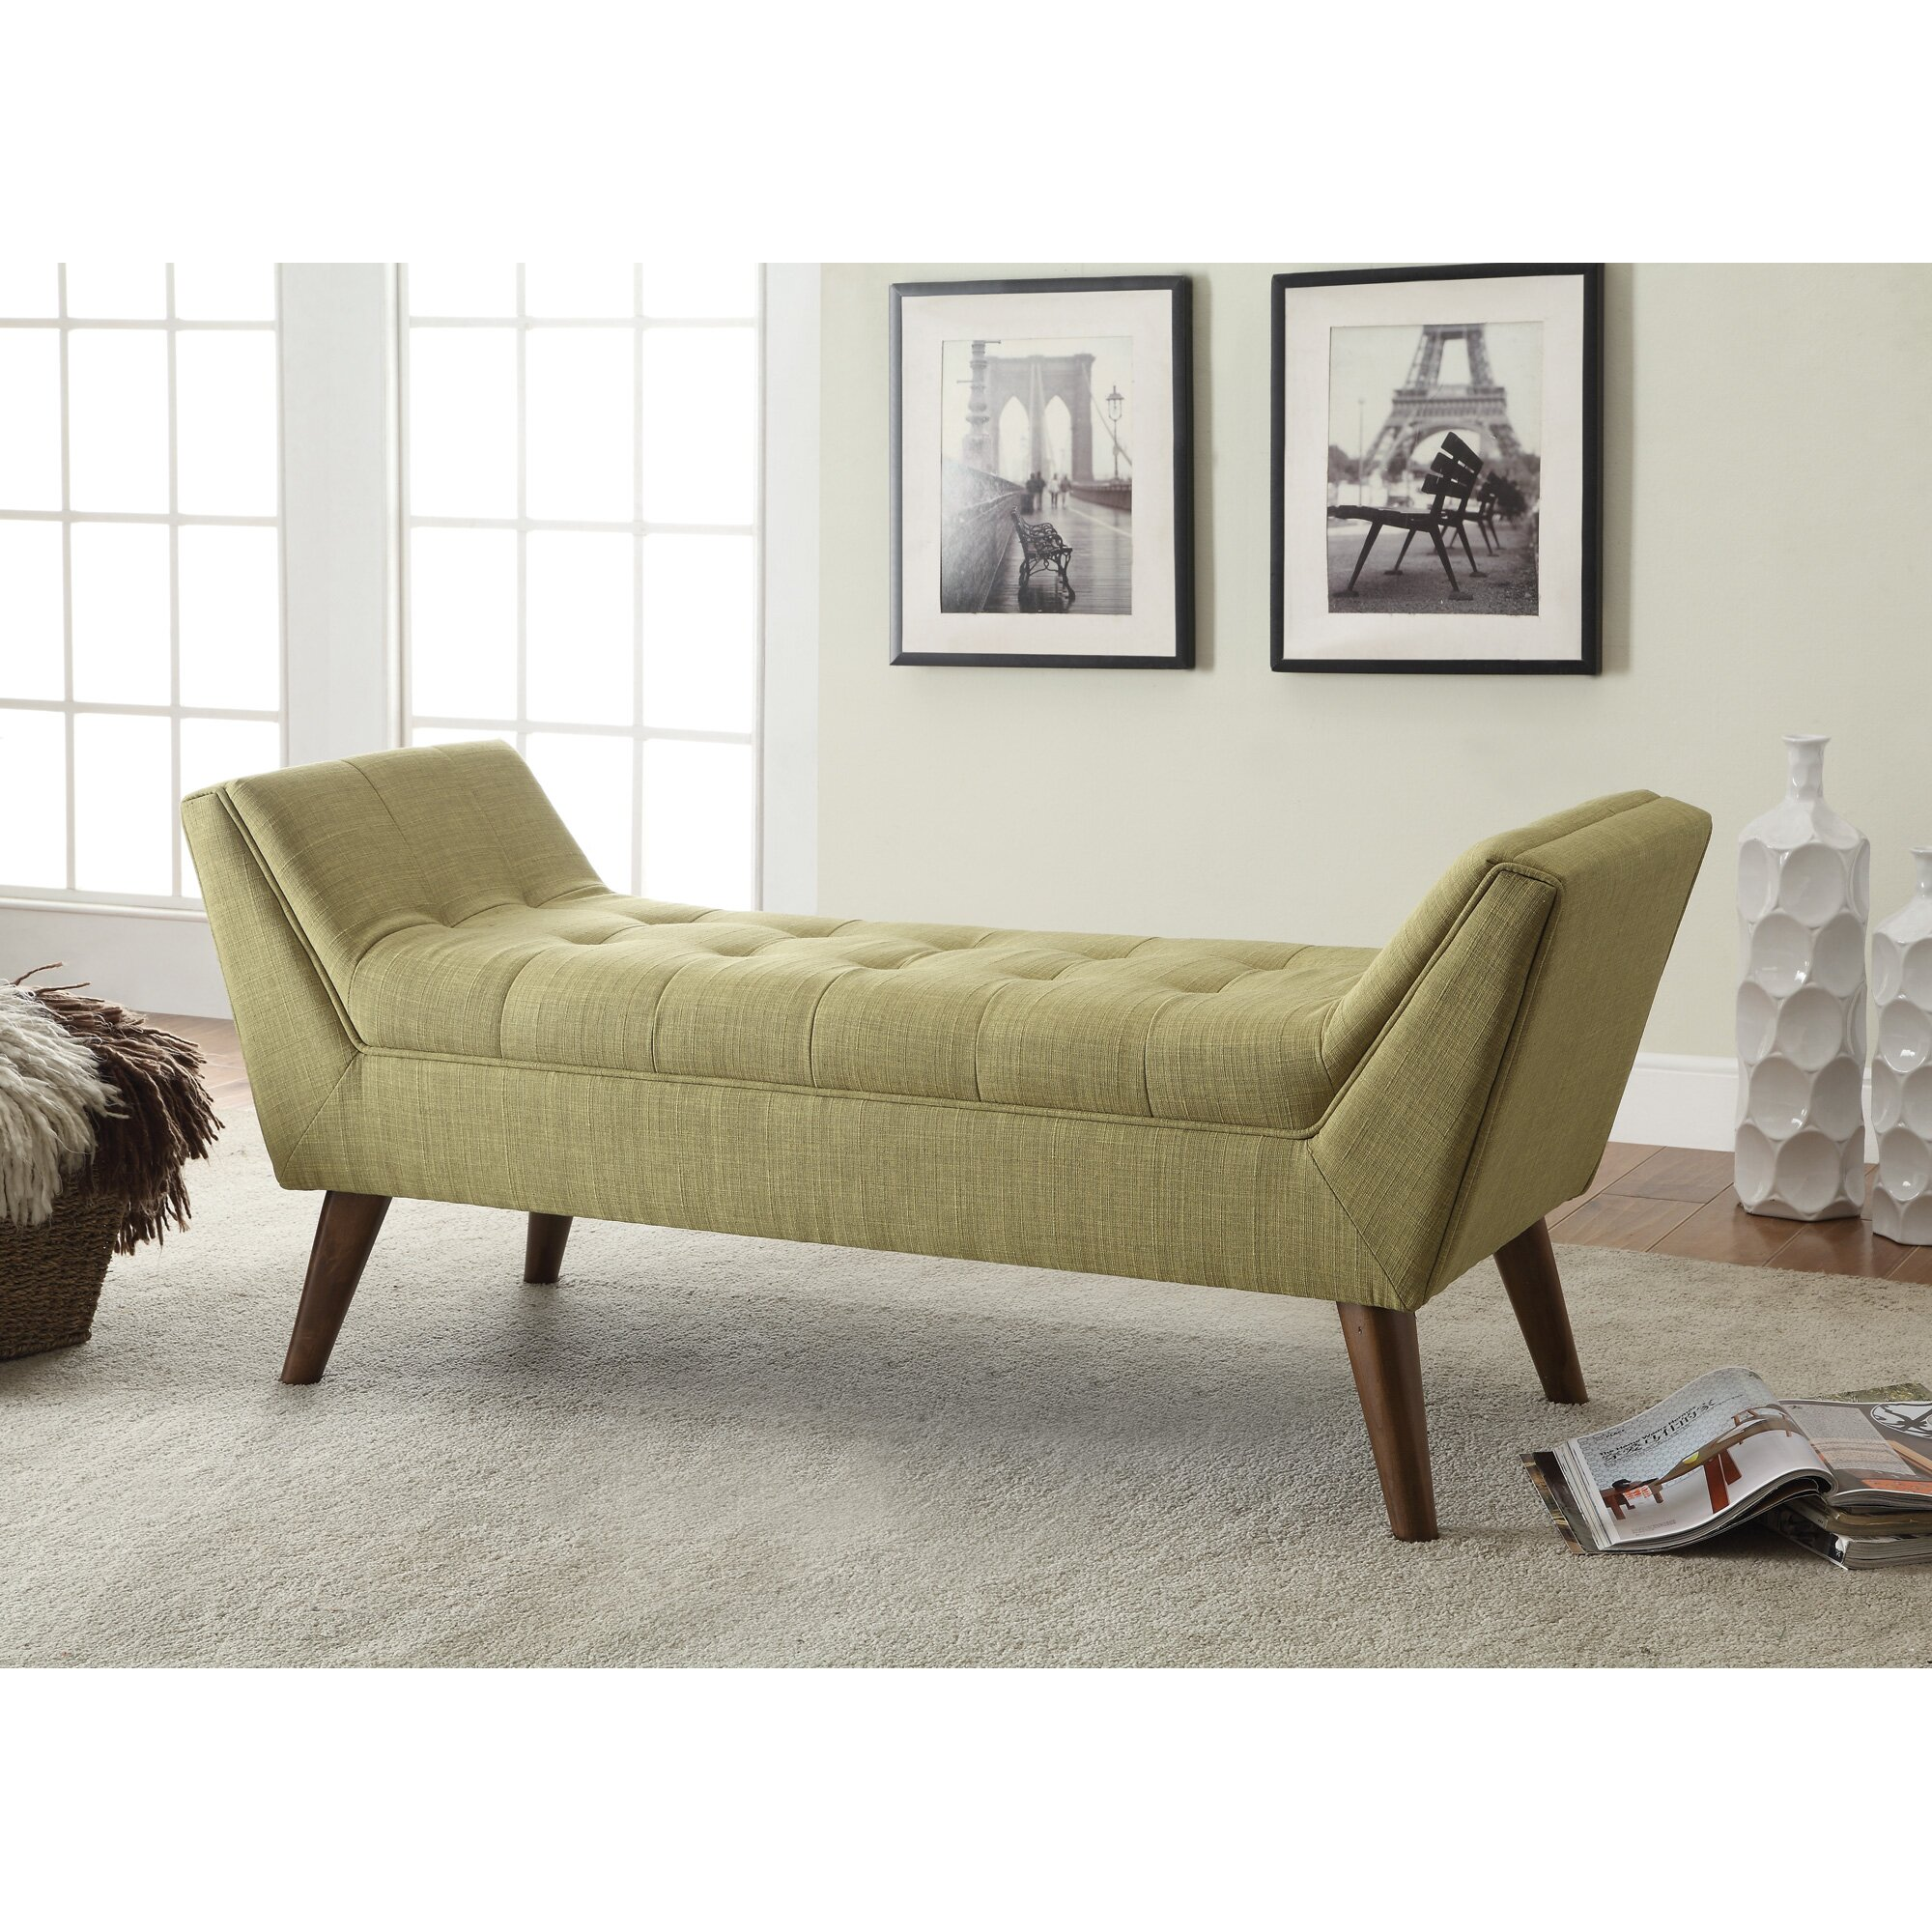 Langley street serena upholstered bedroom bench reviews for Bedroom upholstered bench